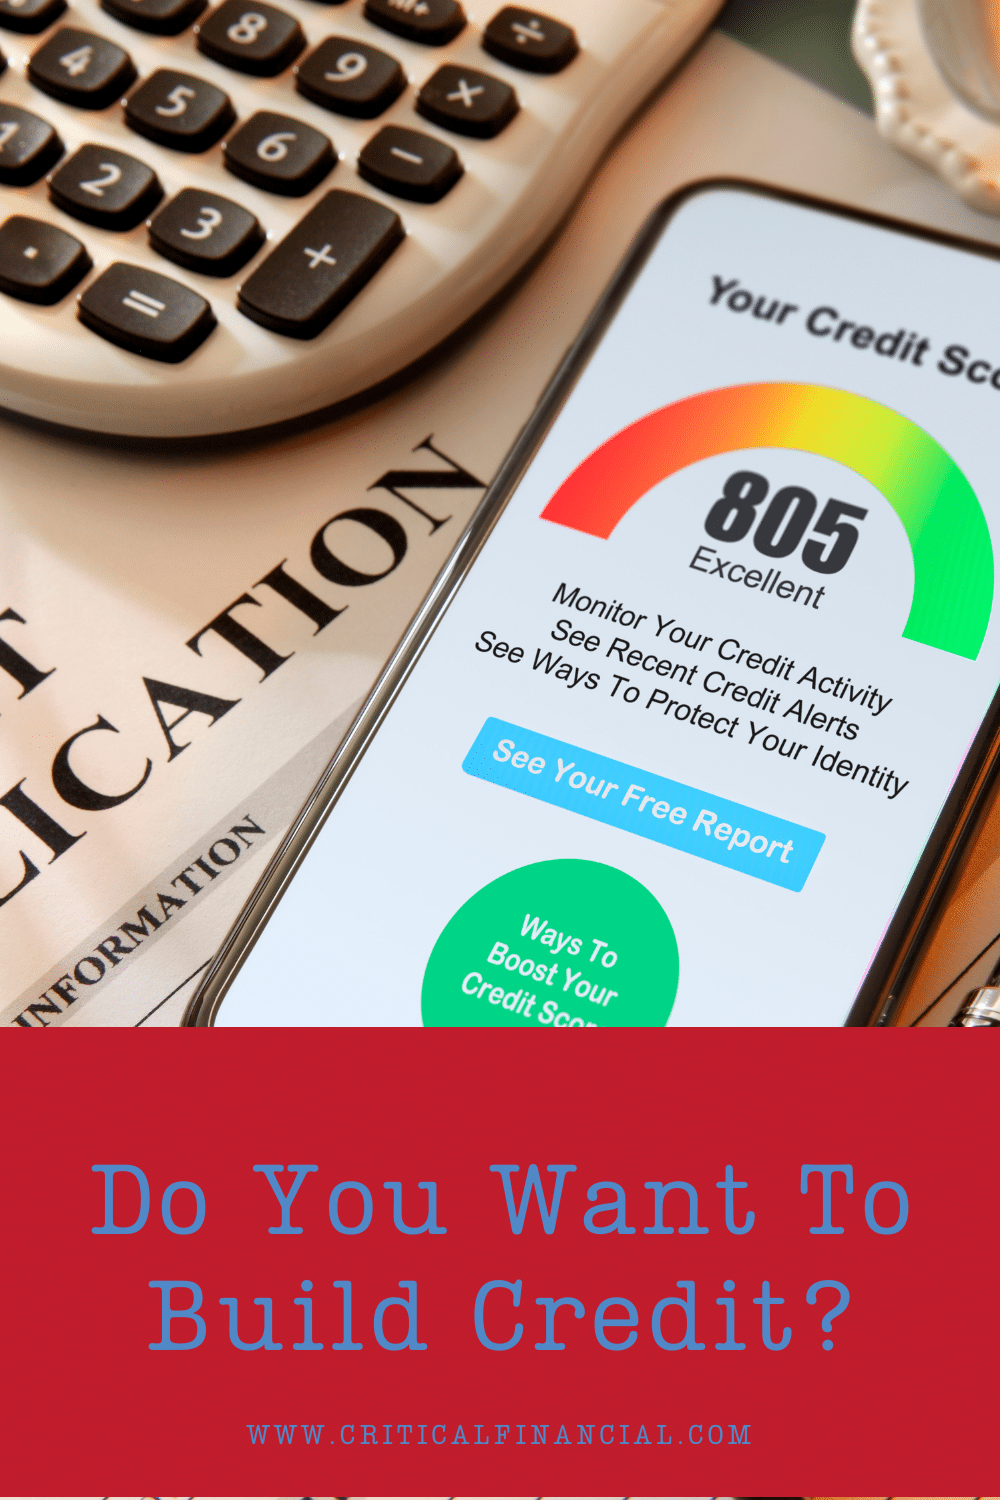 Do You Want To Build Credit